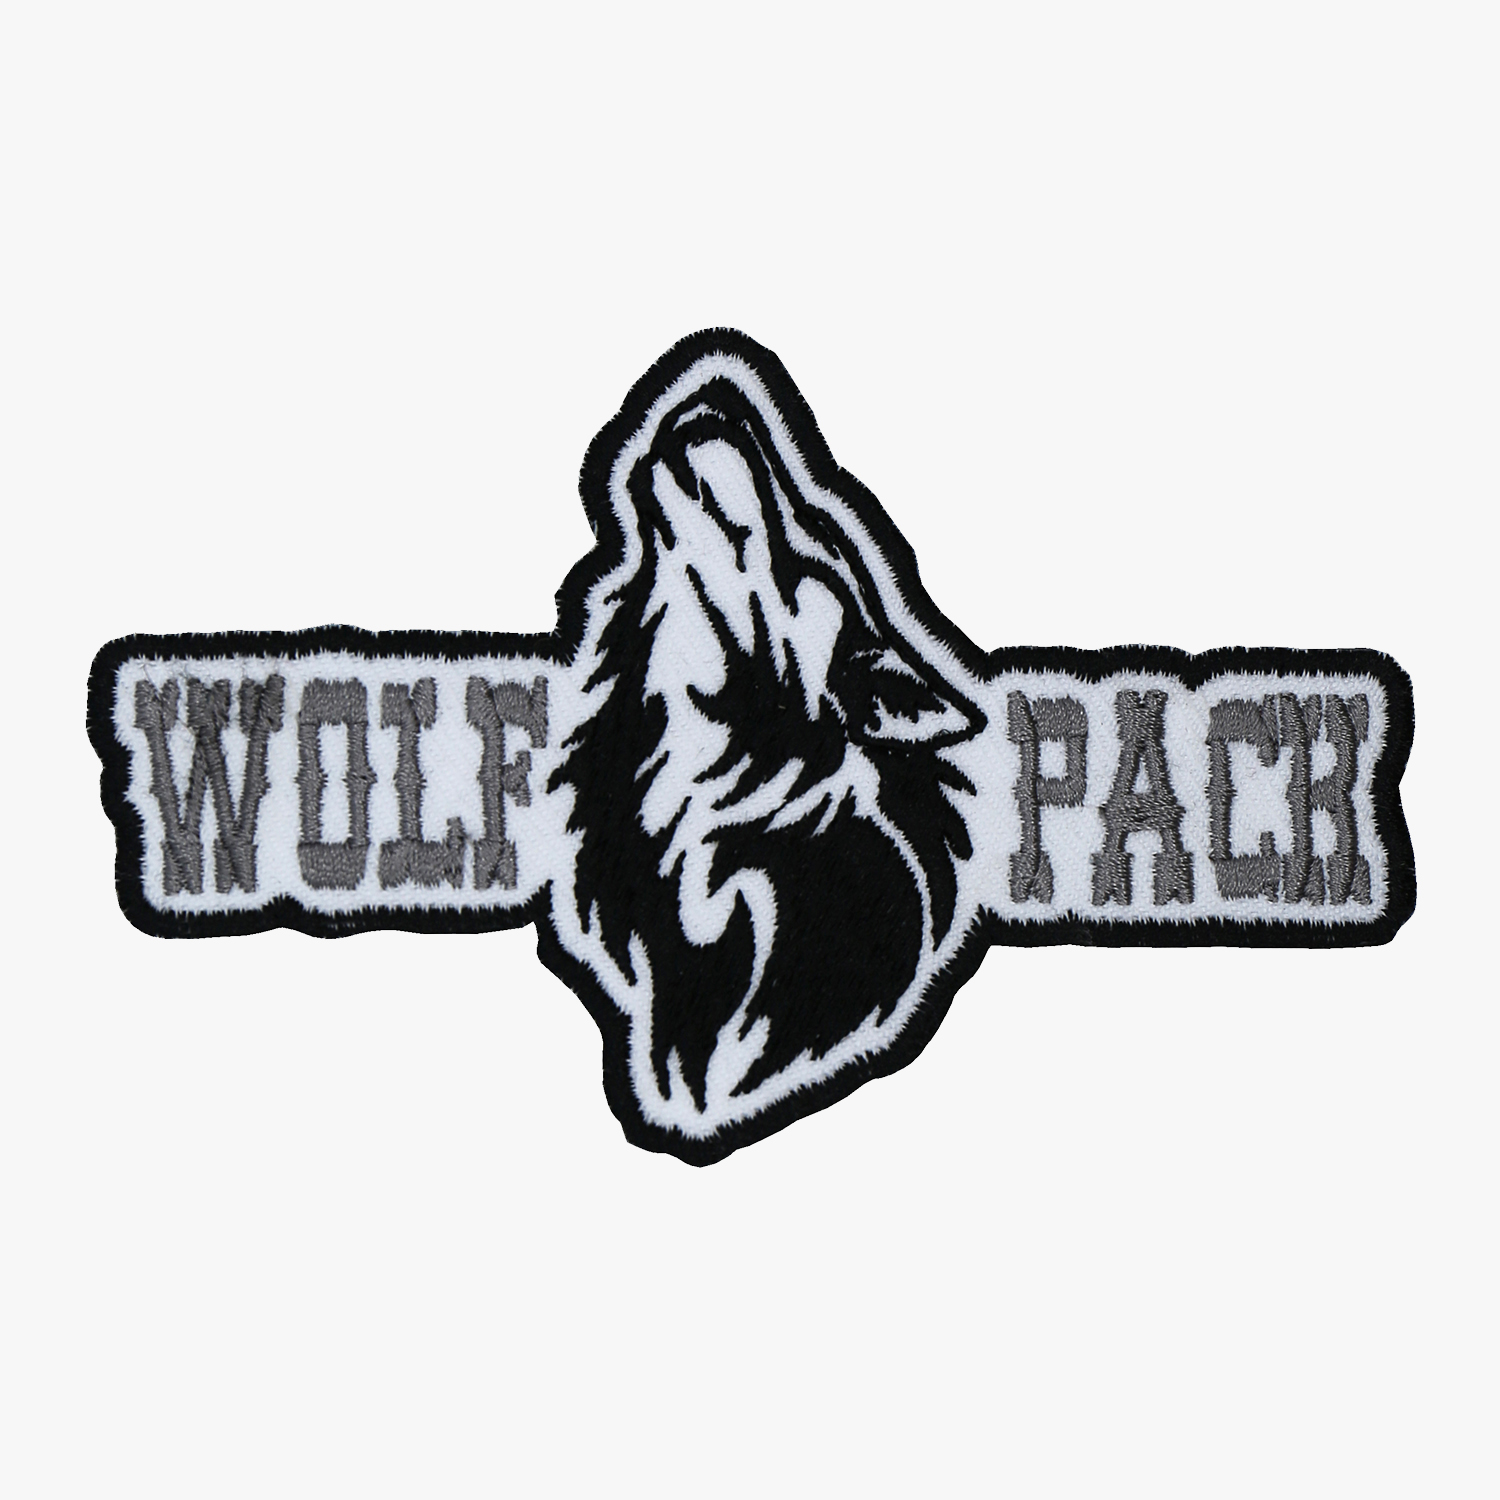 Wolf Pack Motorcycle Club Embroidered Biker Patch